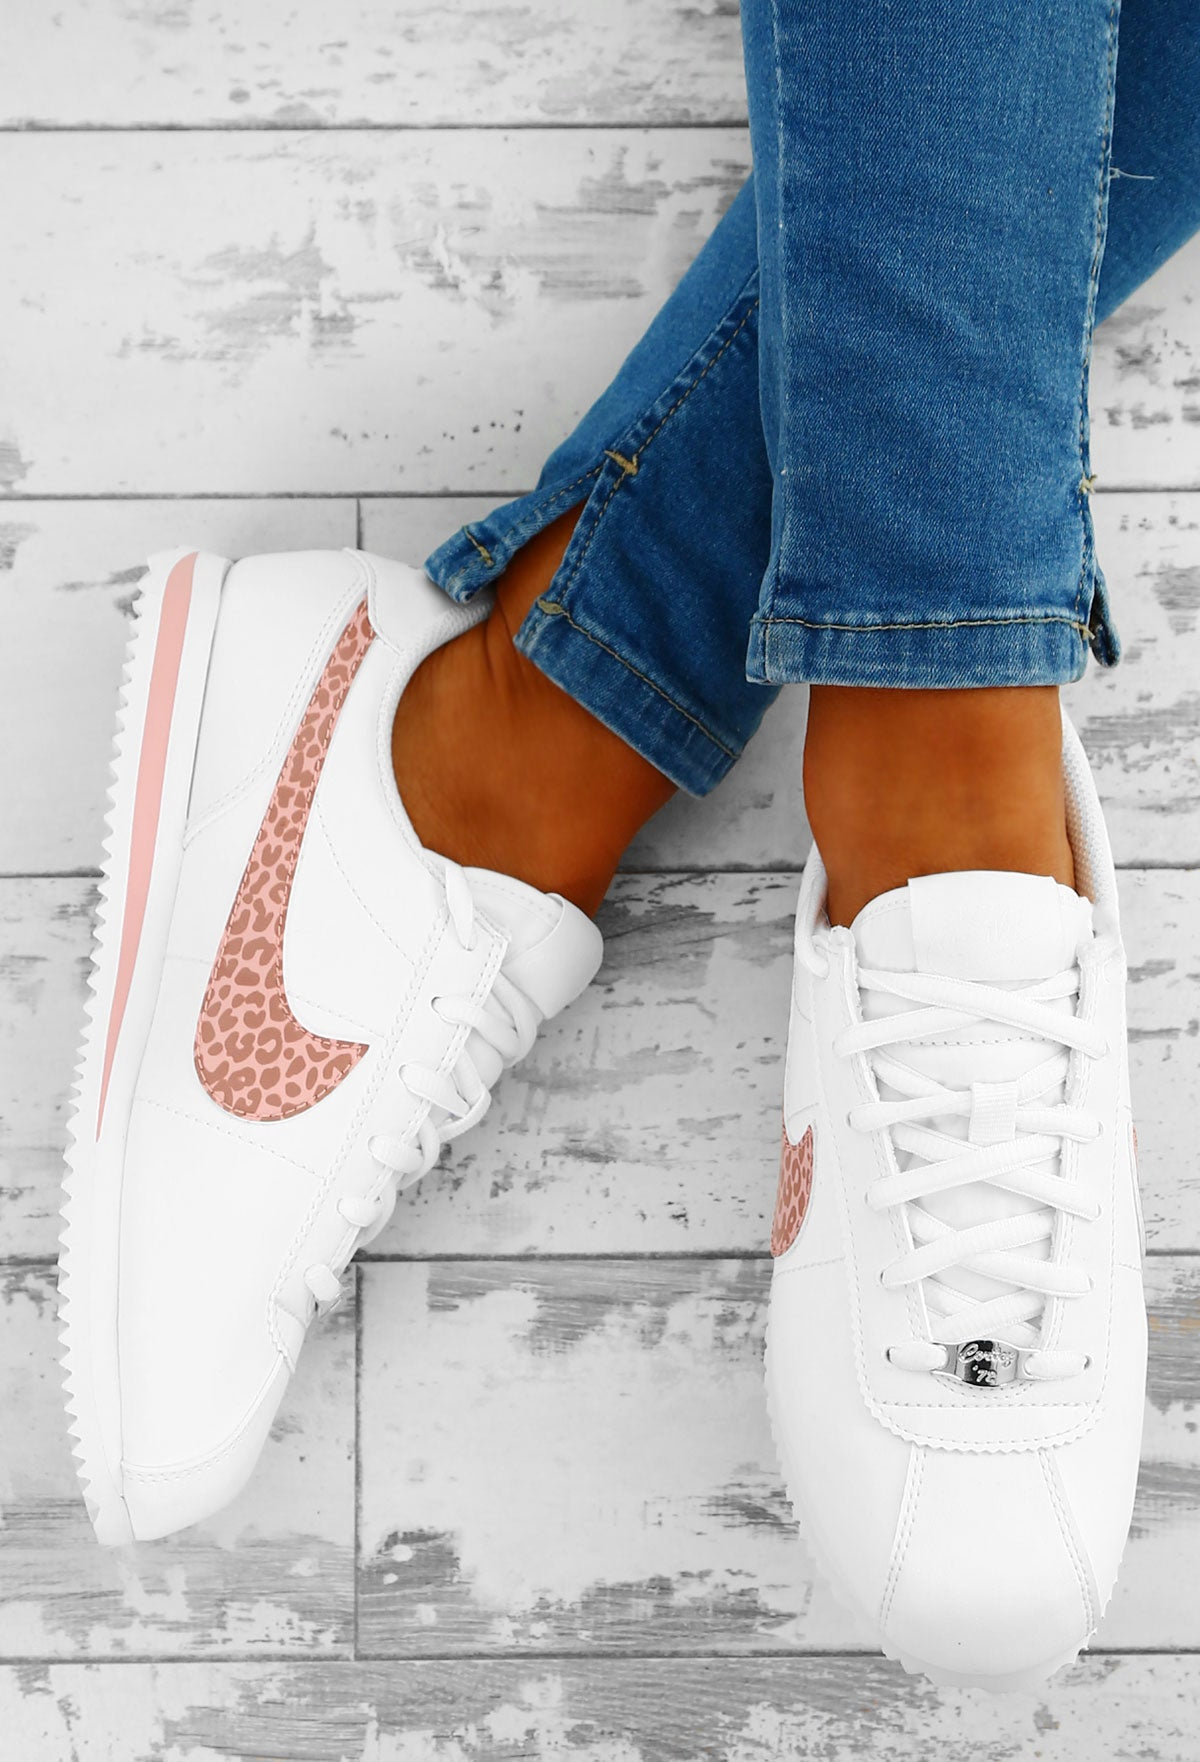 new style 3a395 5c885 Nike Cortez White and Pink Leopard Trainers – Pink Boutique UK